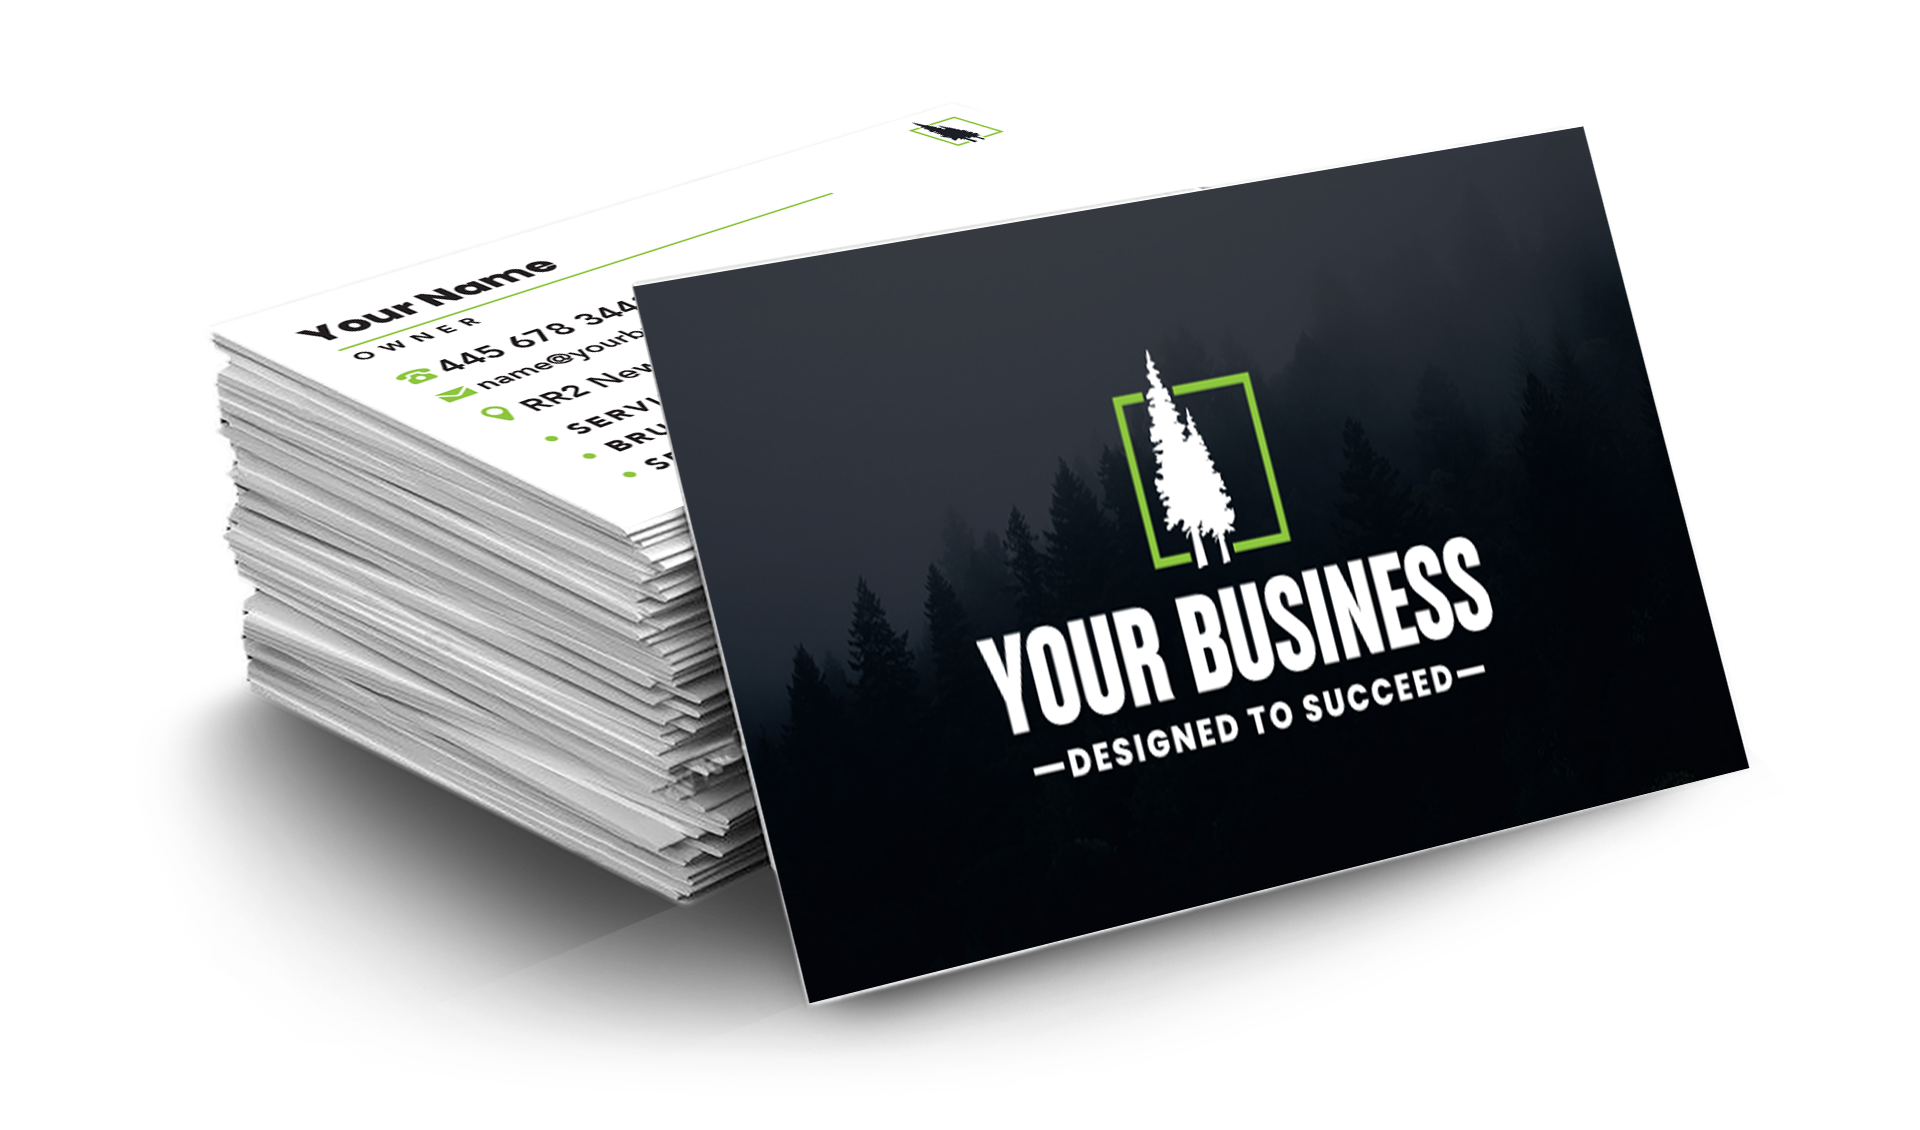 Questionnaire-Demo-Brand-Identity-Business-Cards-2